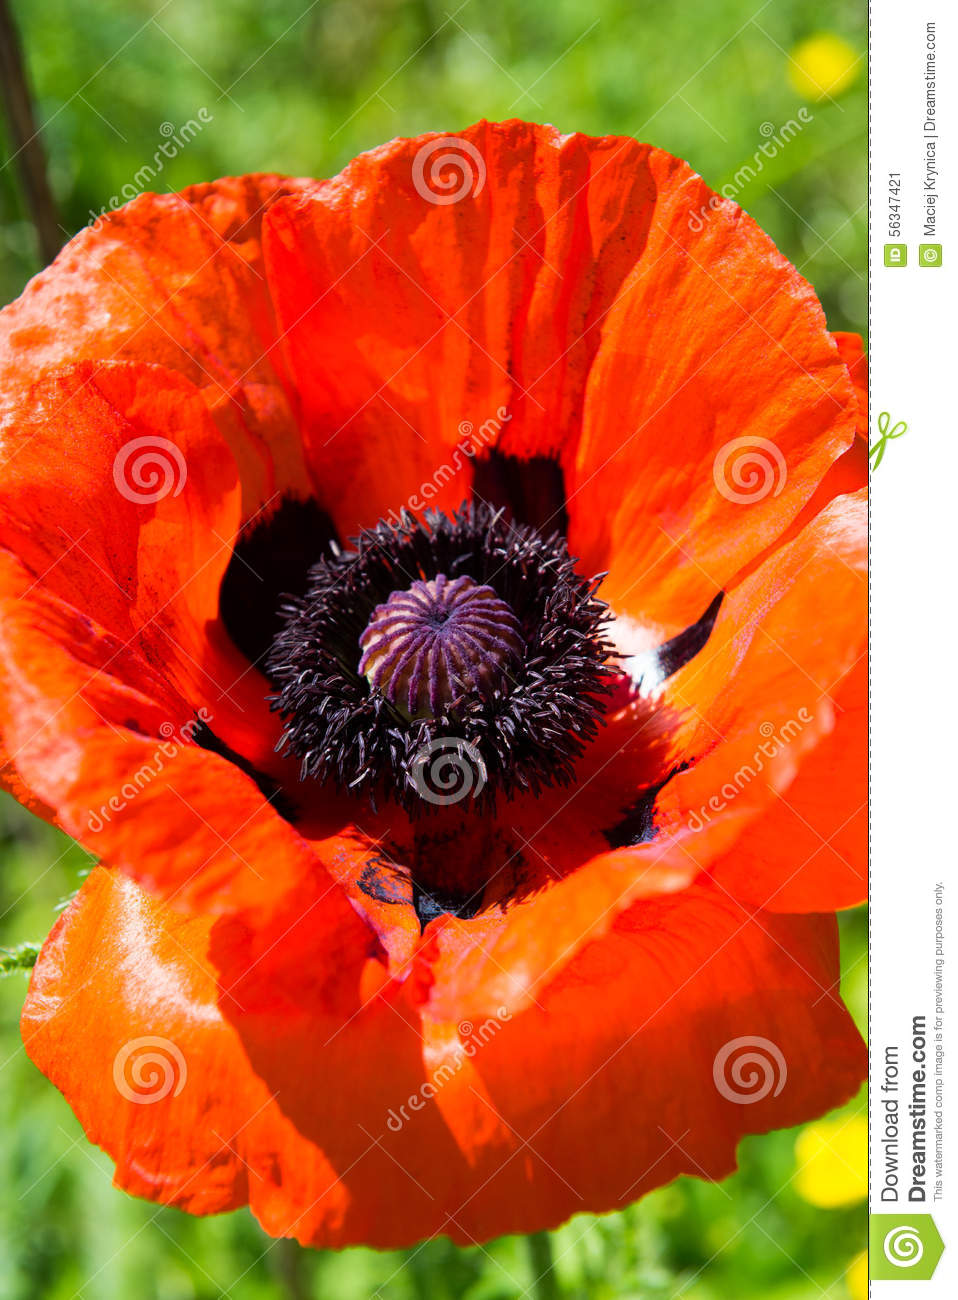 Poppy seed flower stock image image of single nature 56347421 download comp mightylinksfo